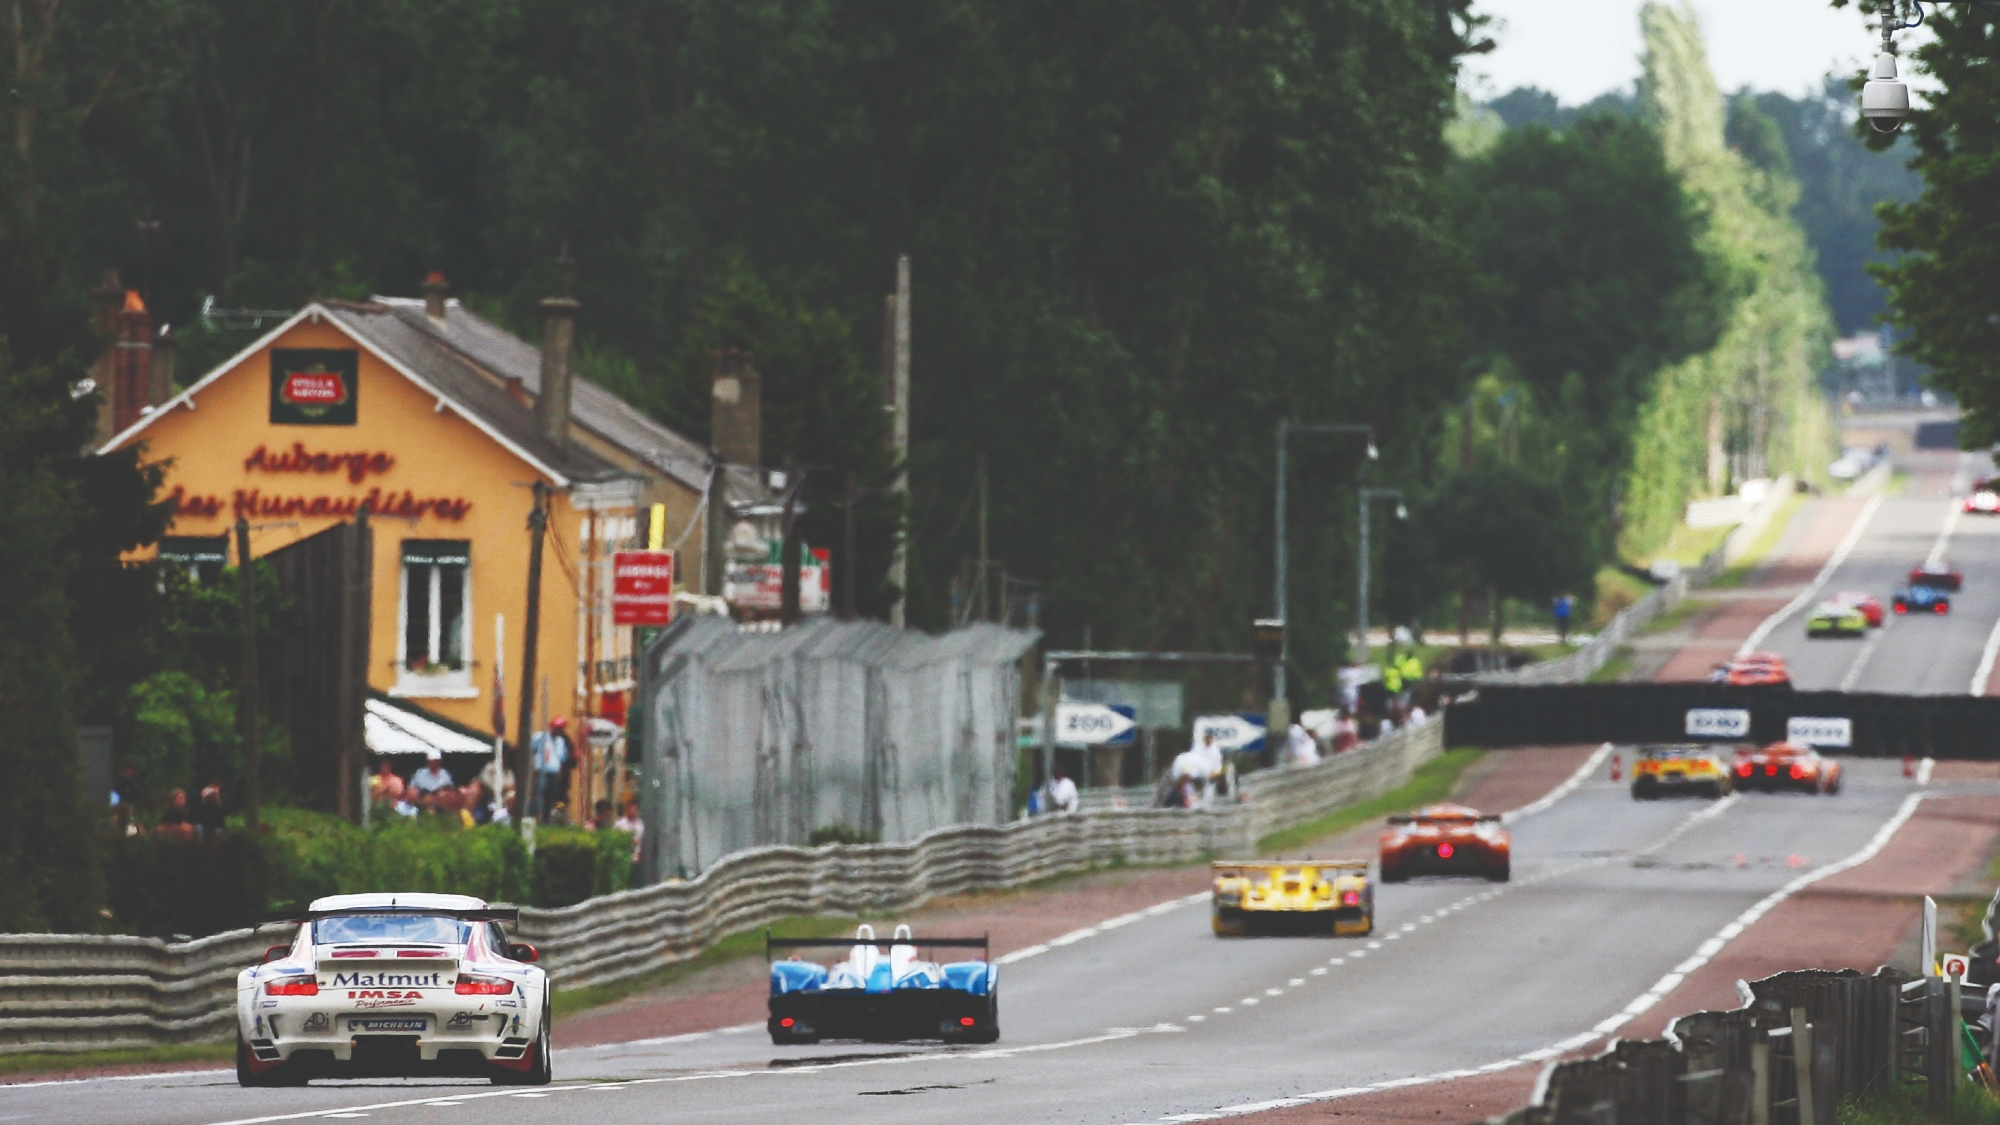 Cars race past the Auberge de Hunaudiere on the Mulsanne Straight duting the 2007 Le Mans 24 Hours